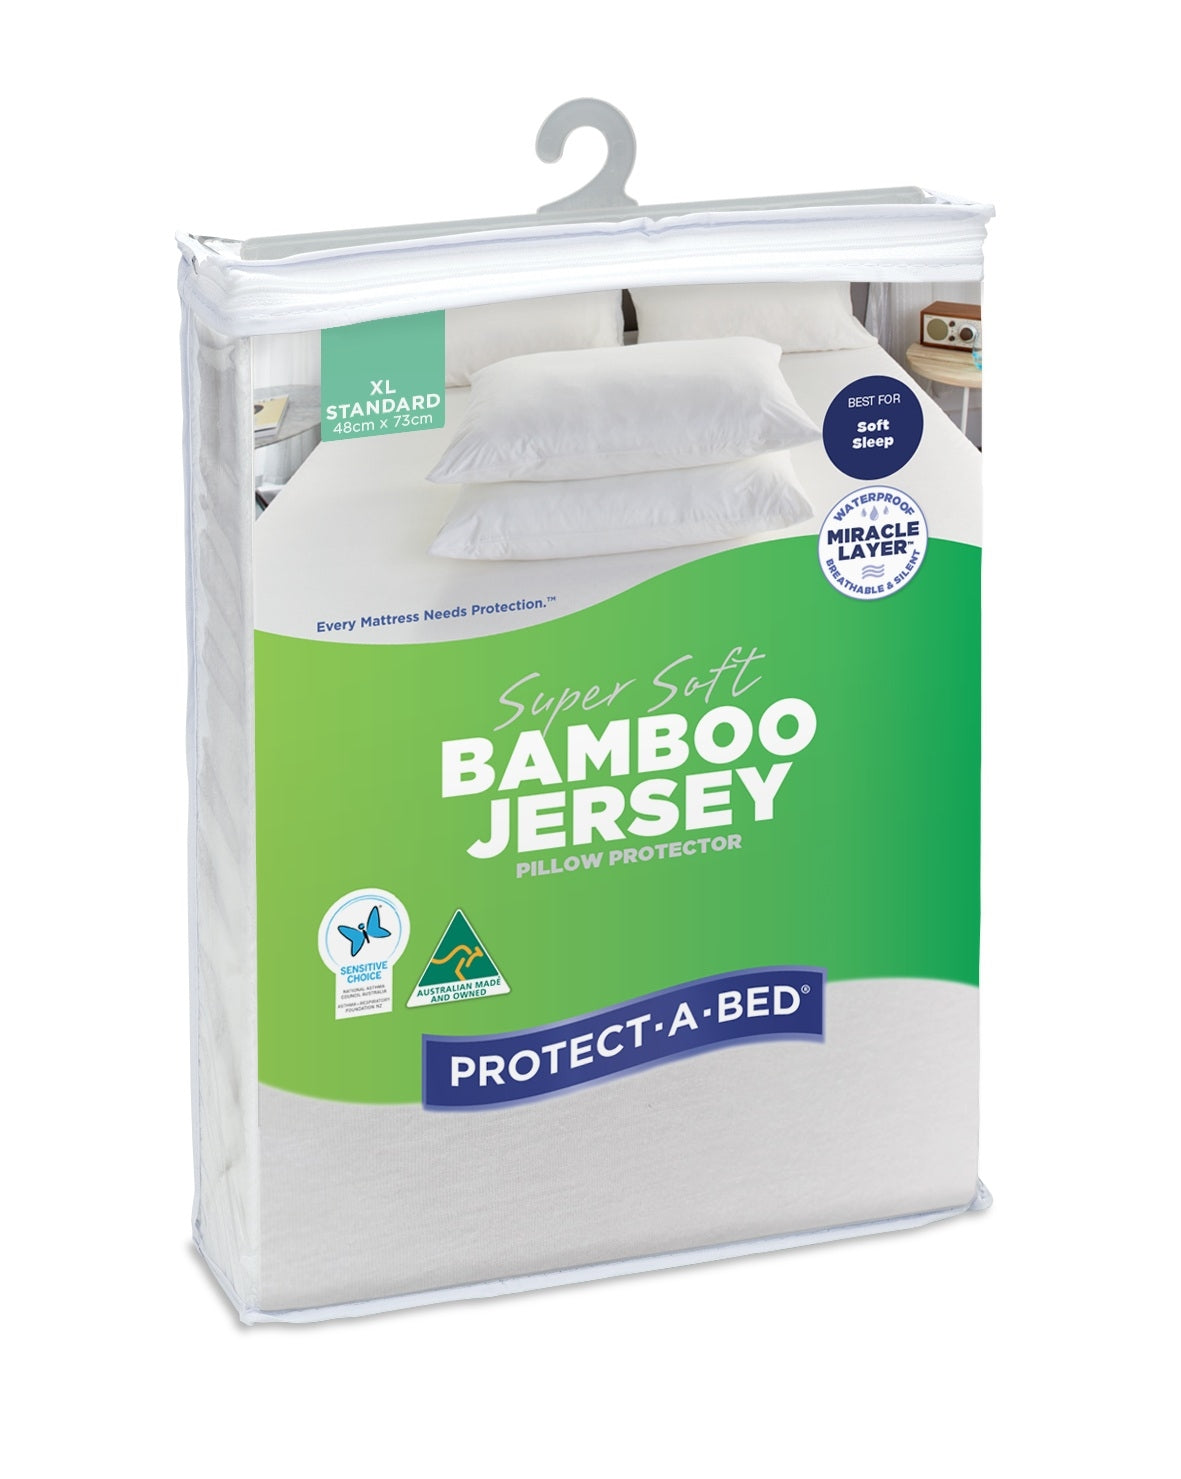 Protect-A-Bed Bamboo Jersey Pillow Protector